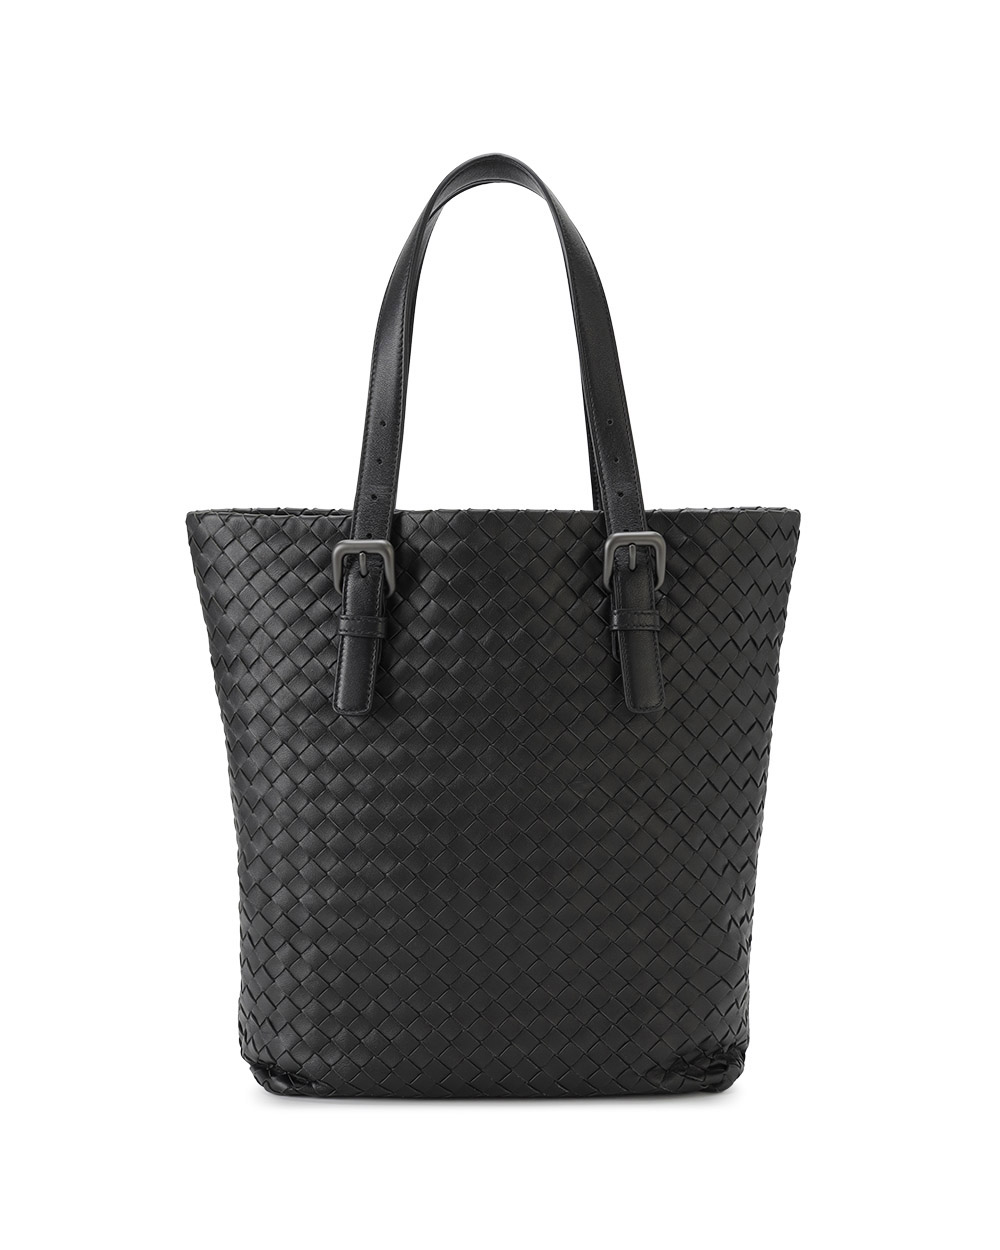 Woven Leather Tote bBag